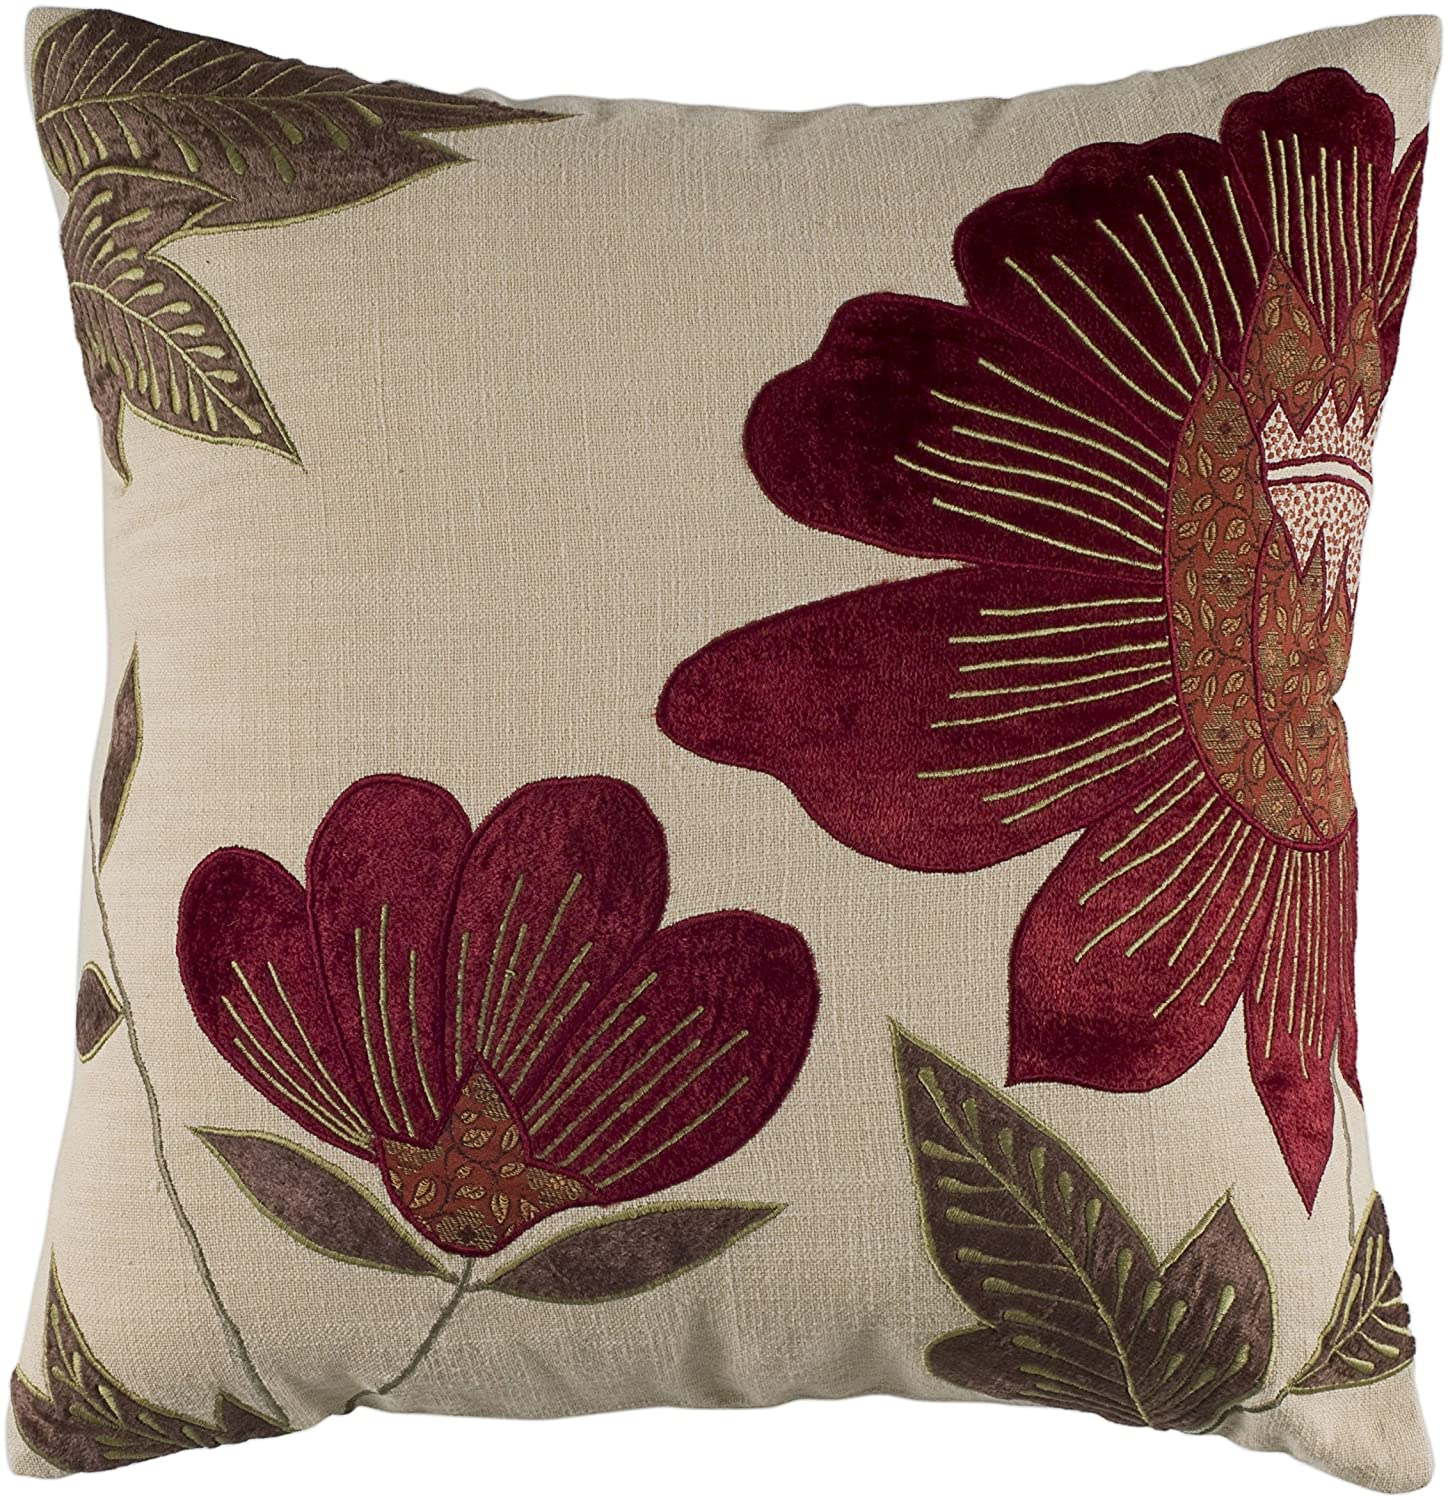 know ways cheap of never i pillows pin match pillow to which and it mix combination easy makes this decorative pick throw